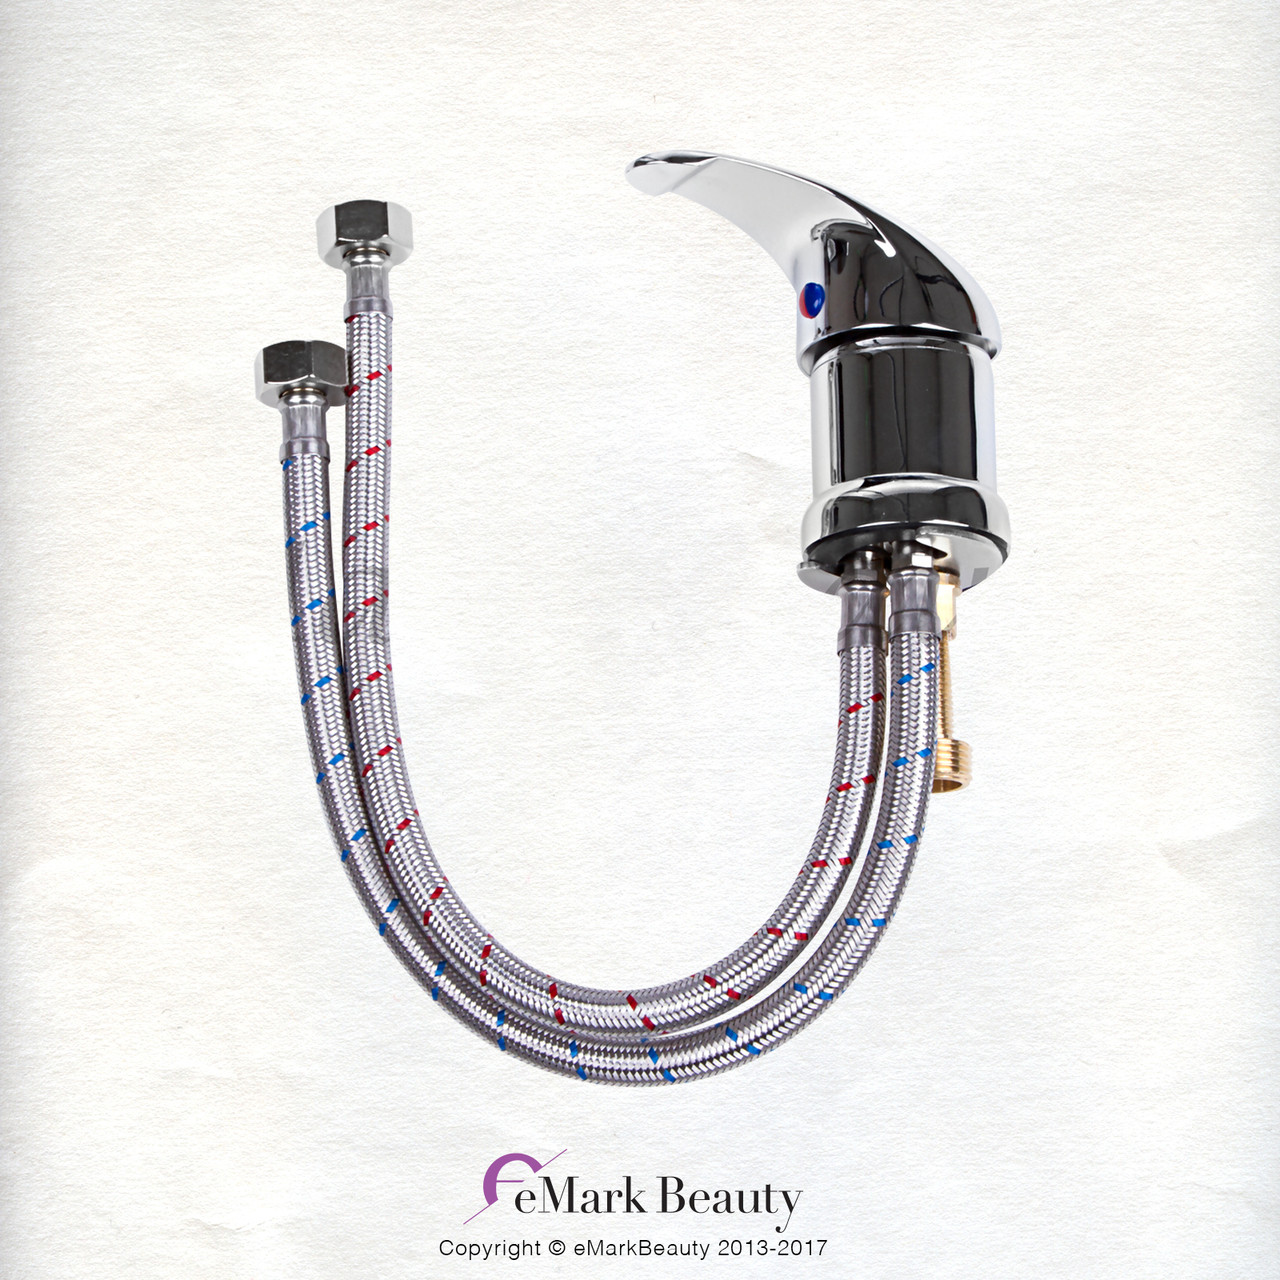 Plumbing Parts Kit for use with Shampoo Bowls with Chrome Faucet Sprayer Hose and Small Gel Neck Rest TLC-1164SHG